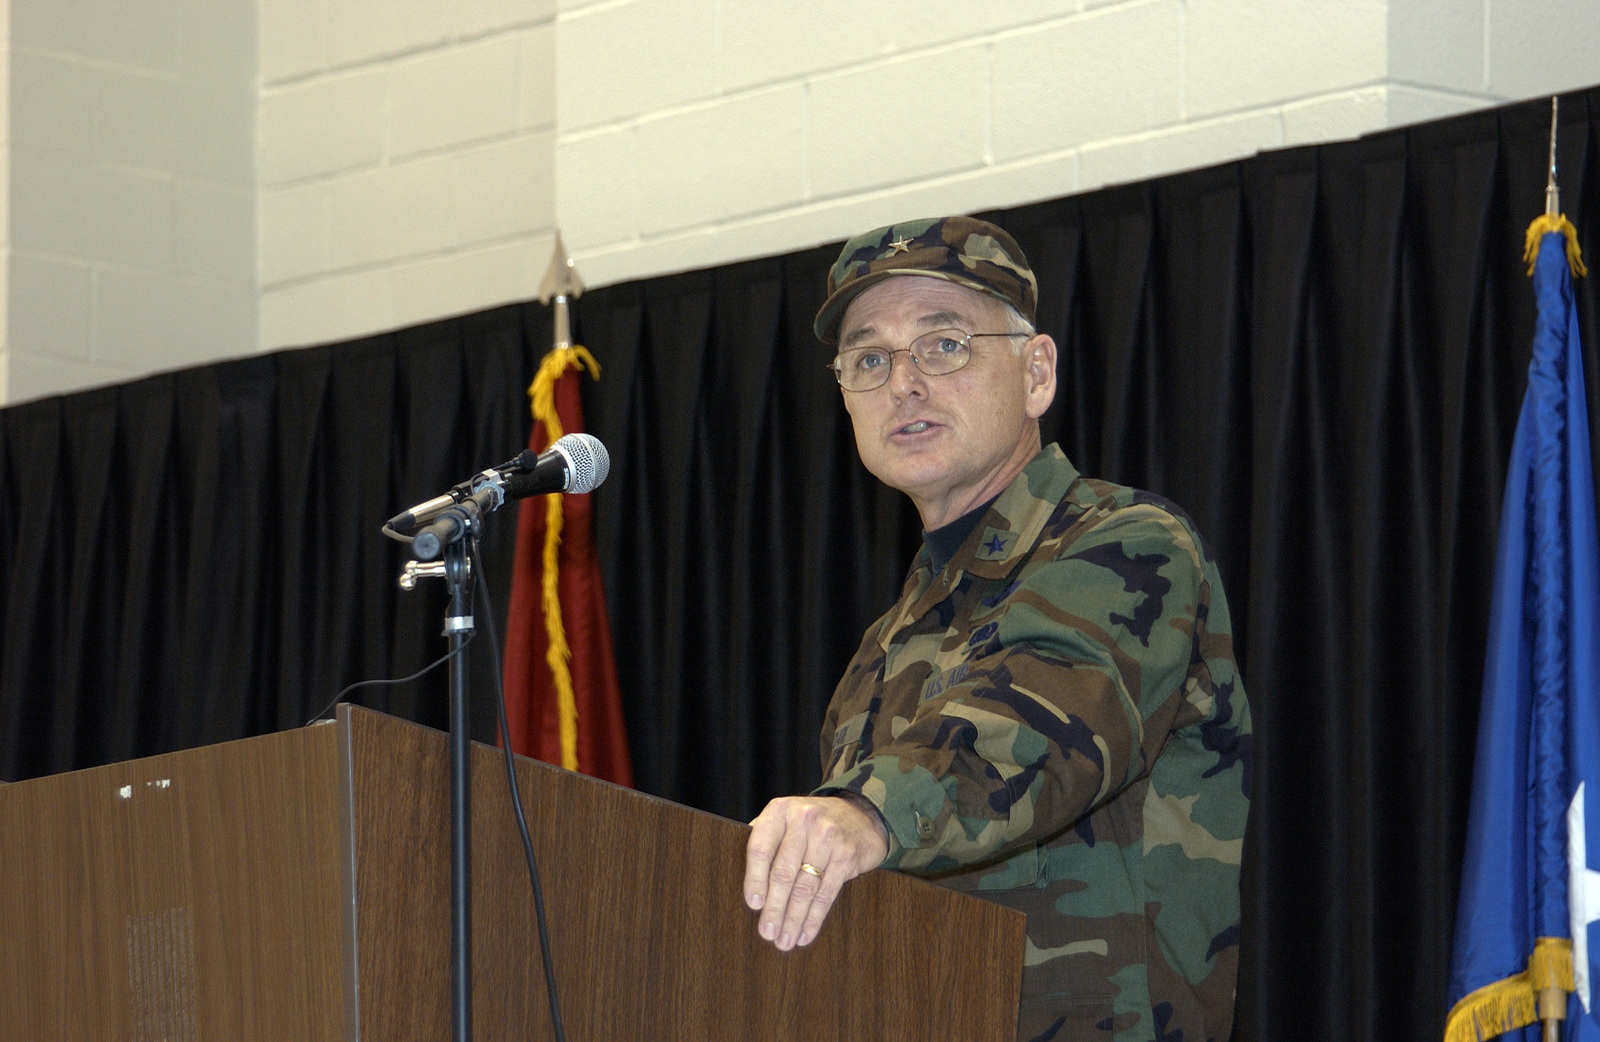 U.S. Air Force Brig. GEN. Kenneth Clark delivers a speech during the Adjutant General Change of Command ceremony at the New Hampshire Army Aviation Hangar at Concord, N.H., on Dec. 12, 2004. This day is monumental for the state of New Hampshire because this is the first time in its history where an Air Force general was selected to serve as the TAG. (USAF PHOTO by STAFF SGT. Dawn Finniss) (Released)